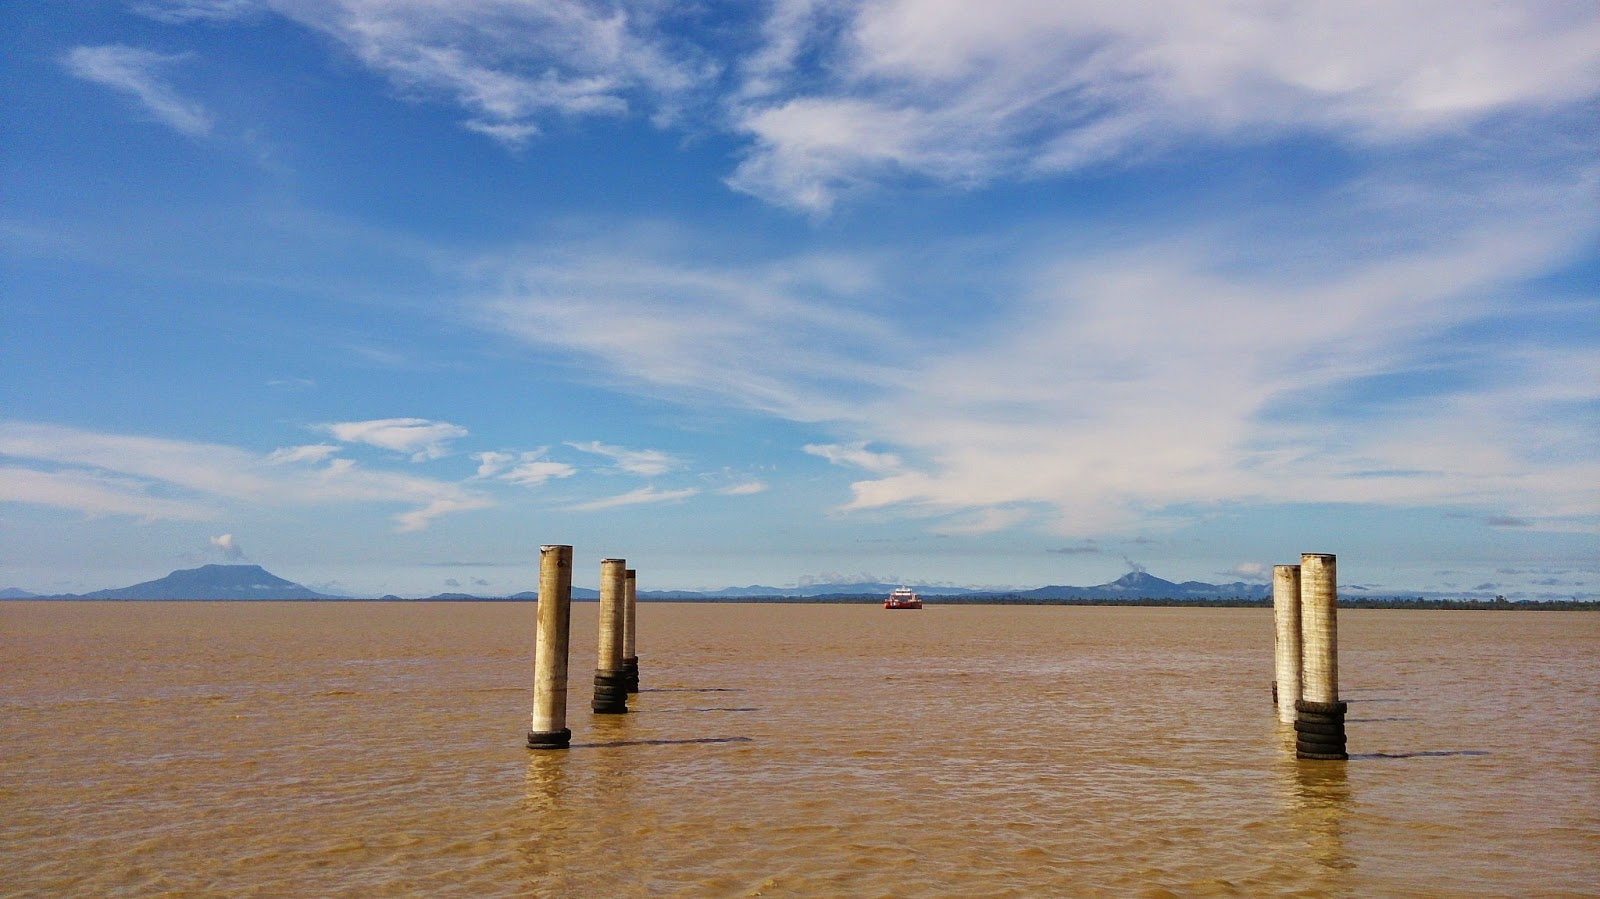 Batang Lupar ferry crossing. This is the widest river in Sarawak. Pix: Nelson's Adventure